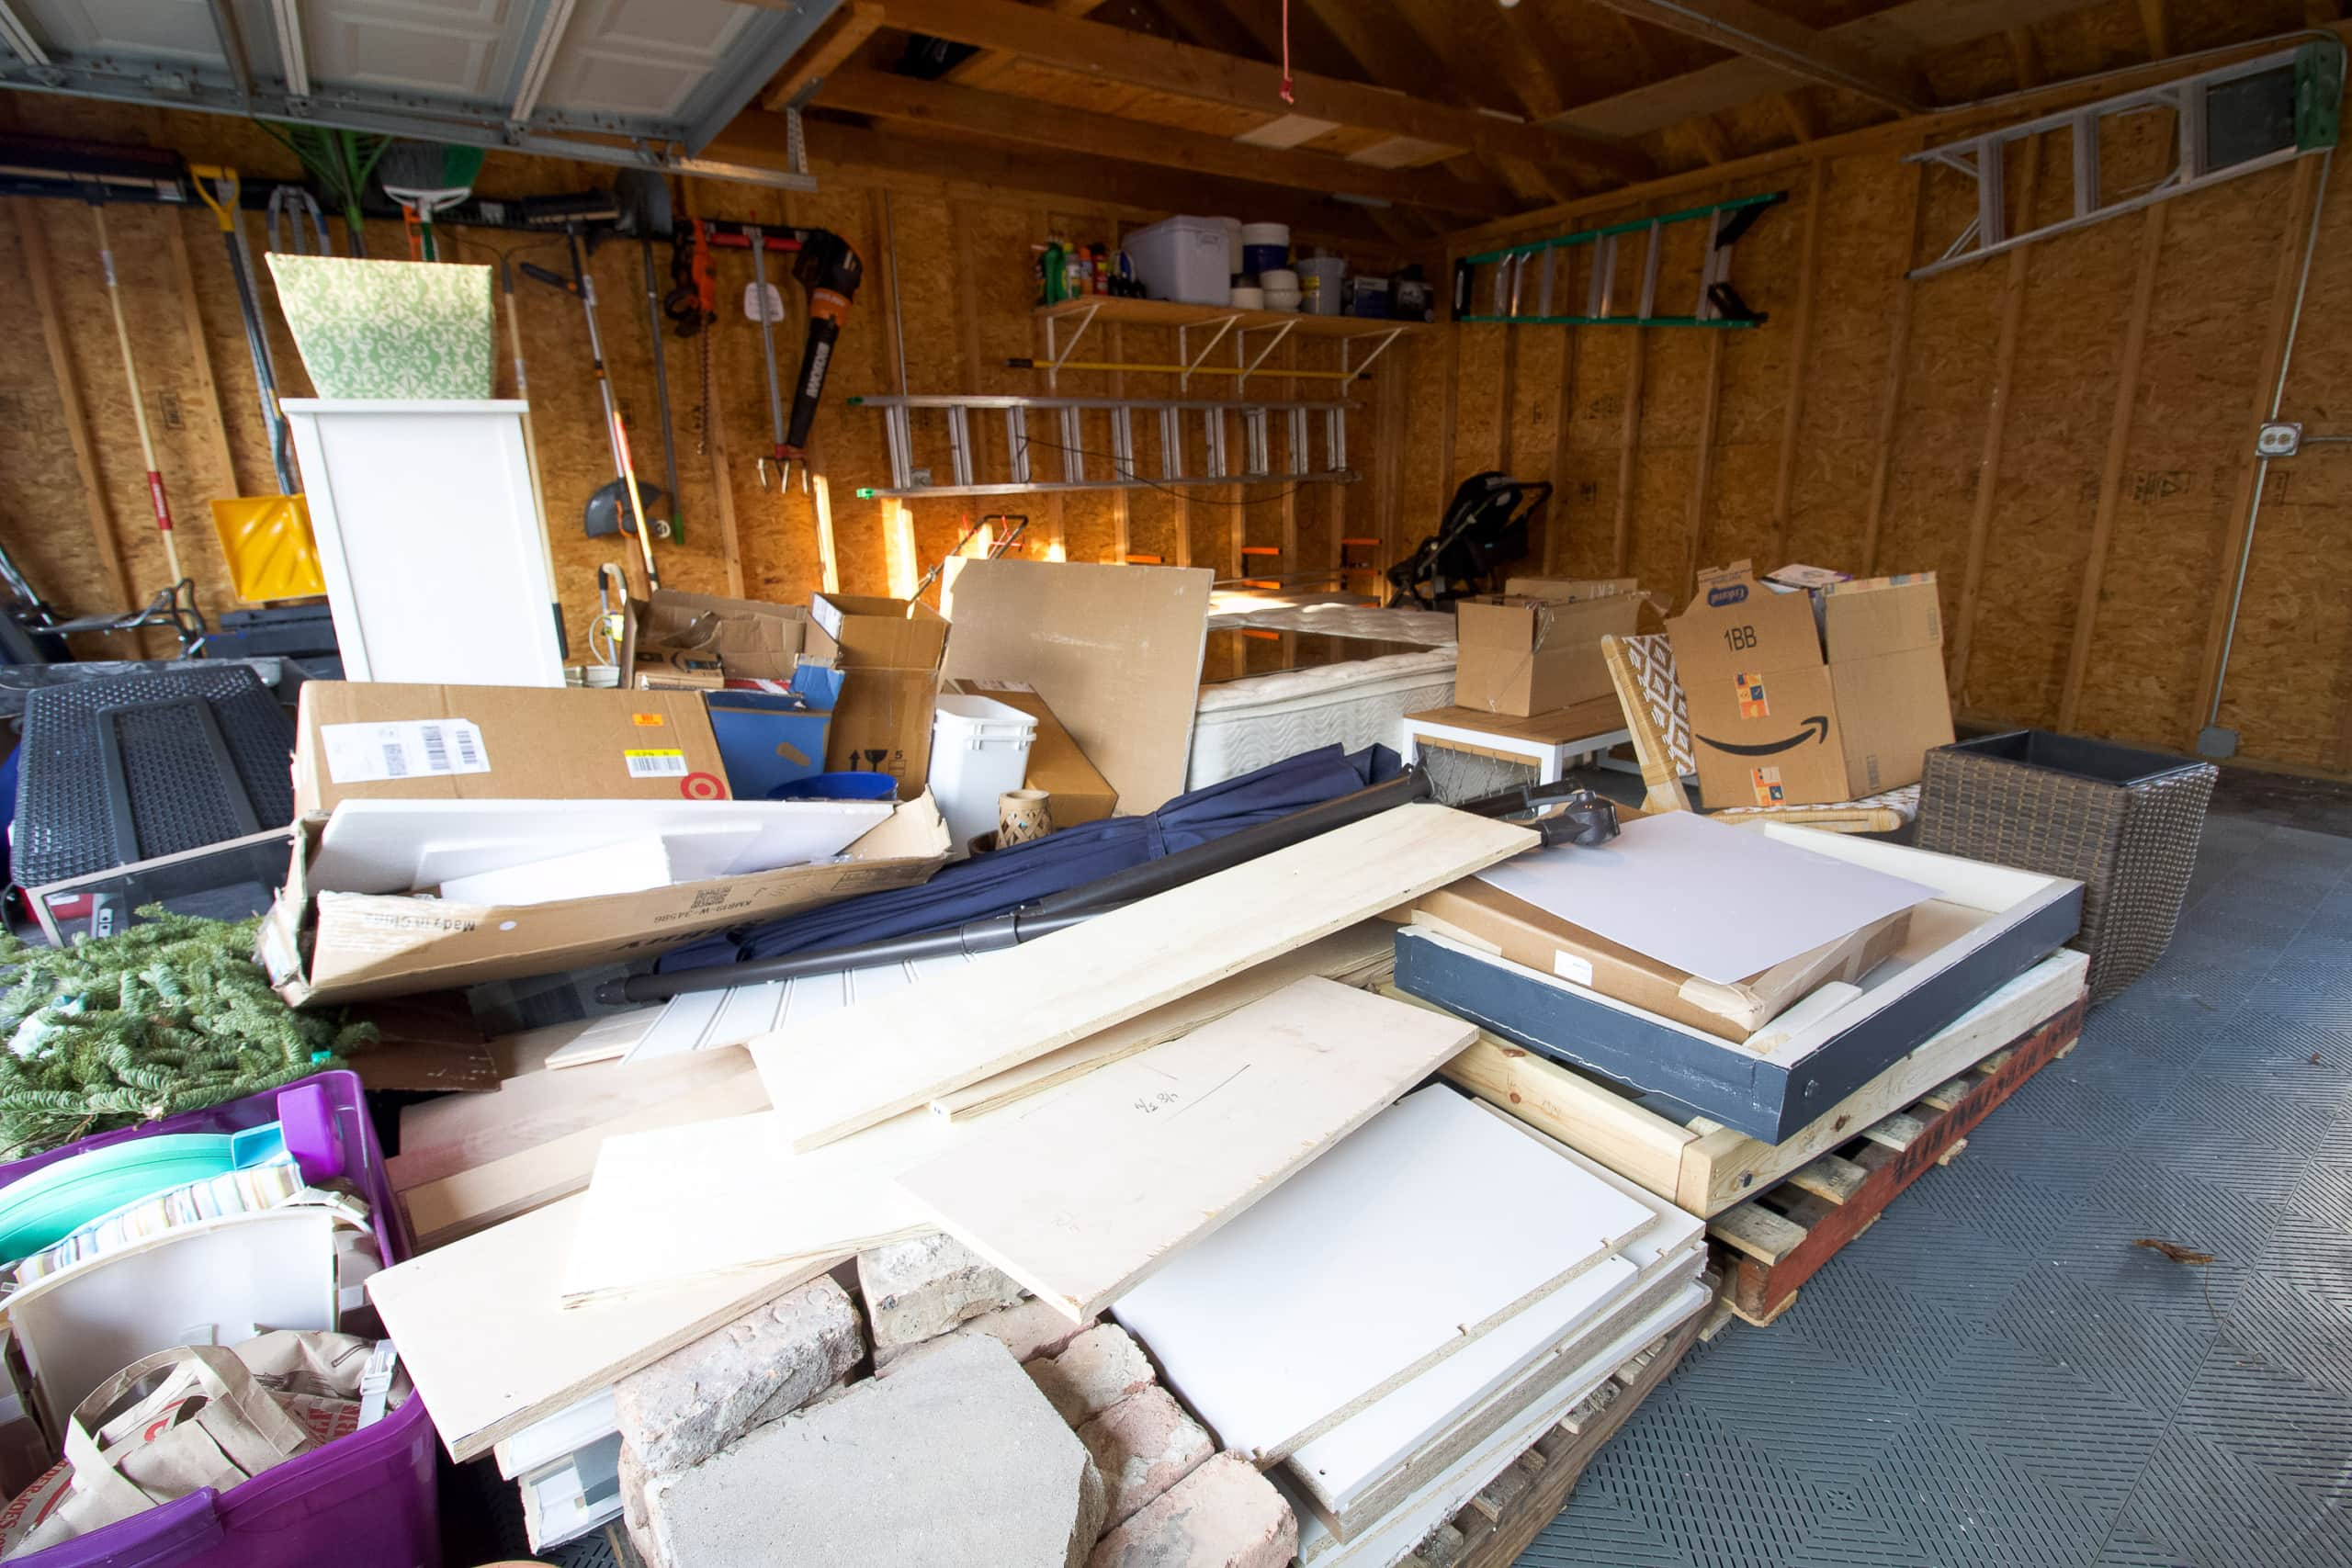 Our big junk pile